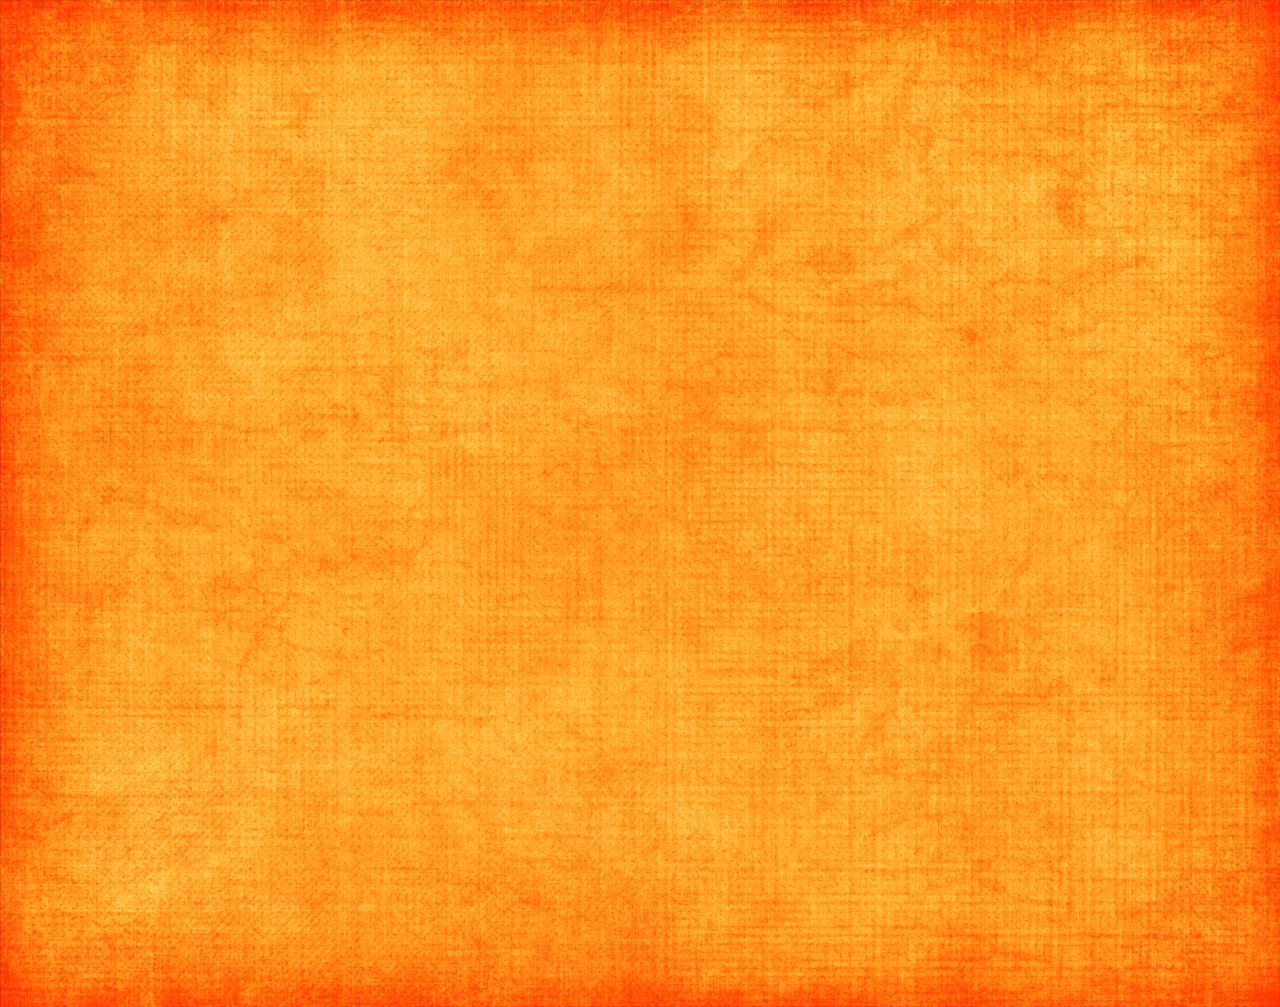 44+ Orange Background Images, HD Orange Wallpapers and Photos